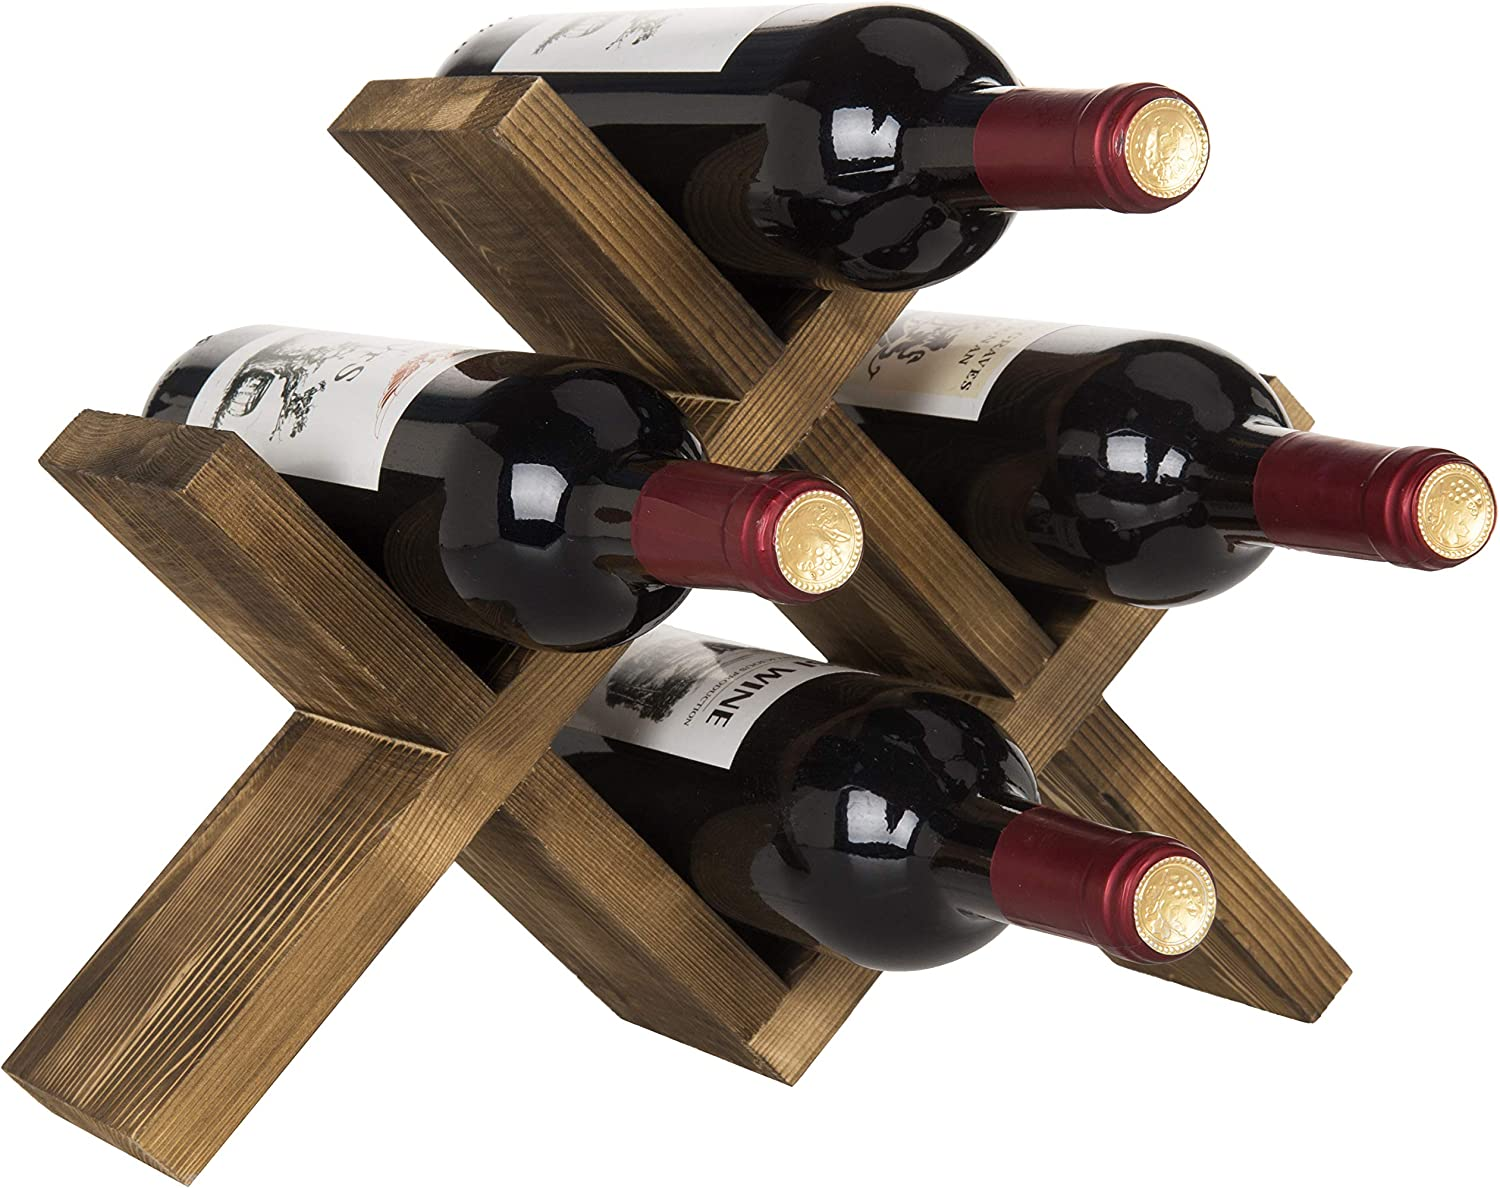 Mygift 4 Bottle Countertop Rustic Brown Wood Wine Rack Kitchen Dining